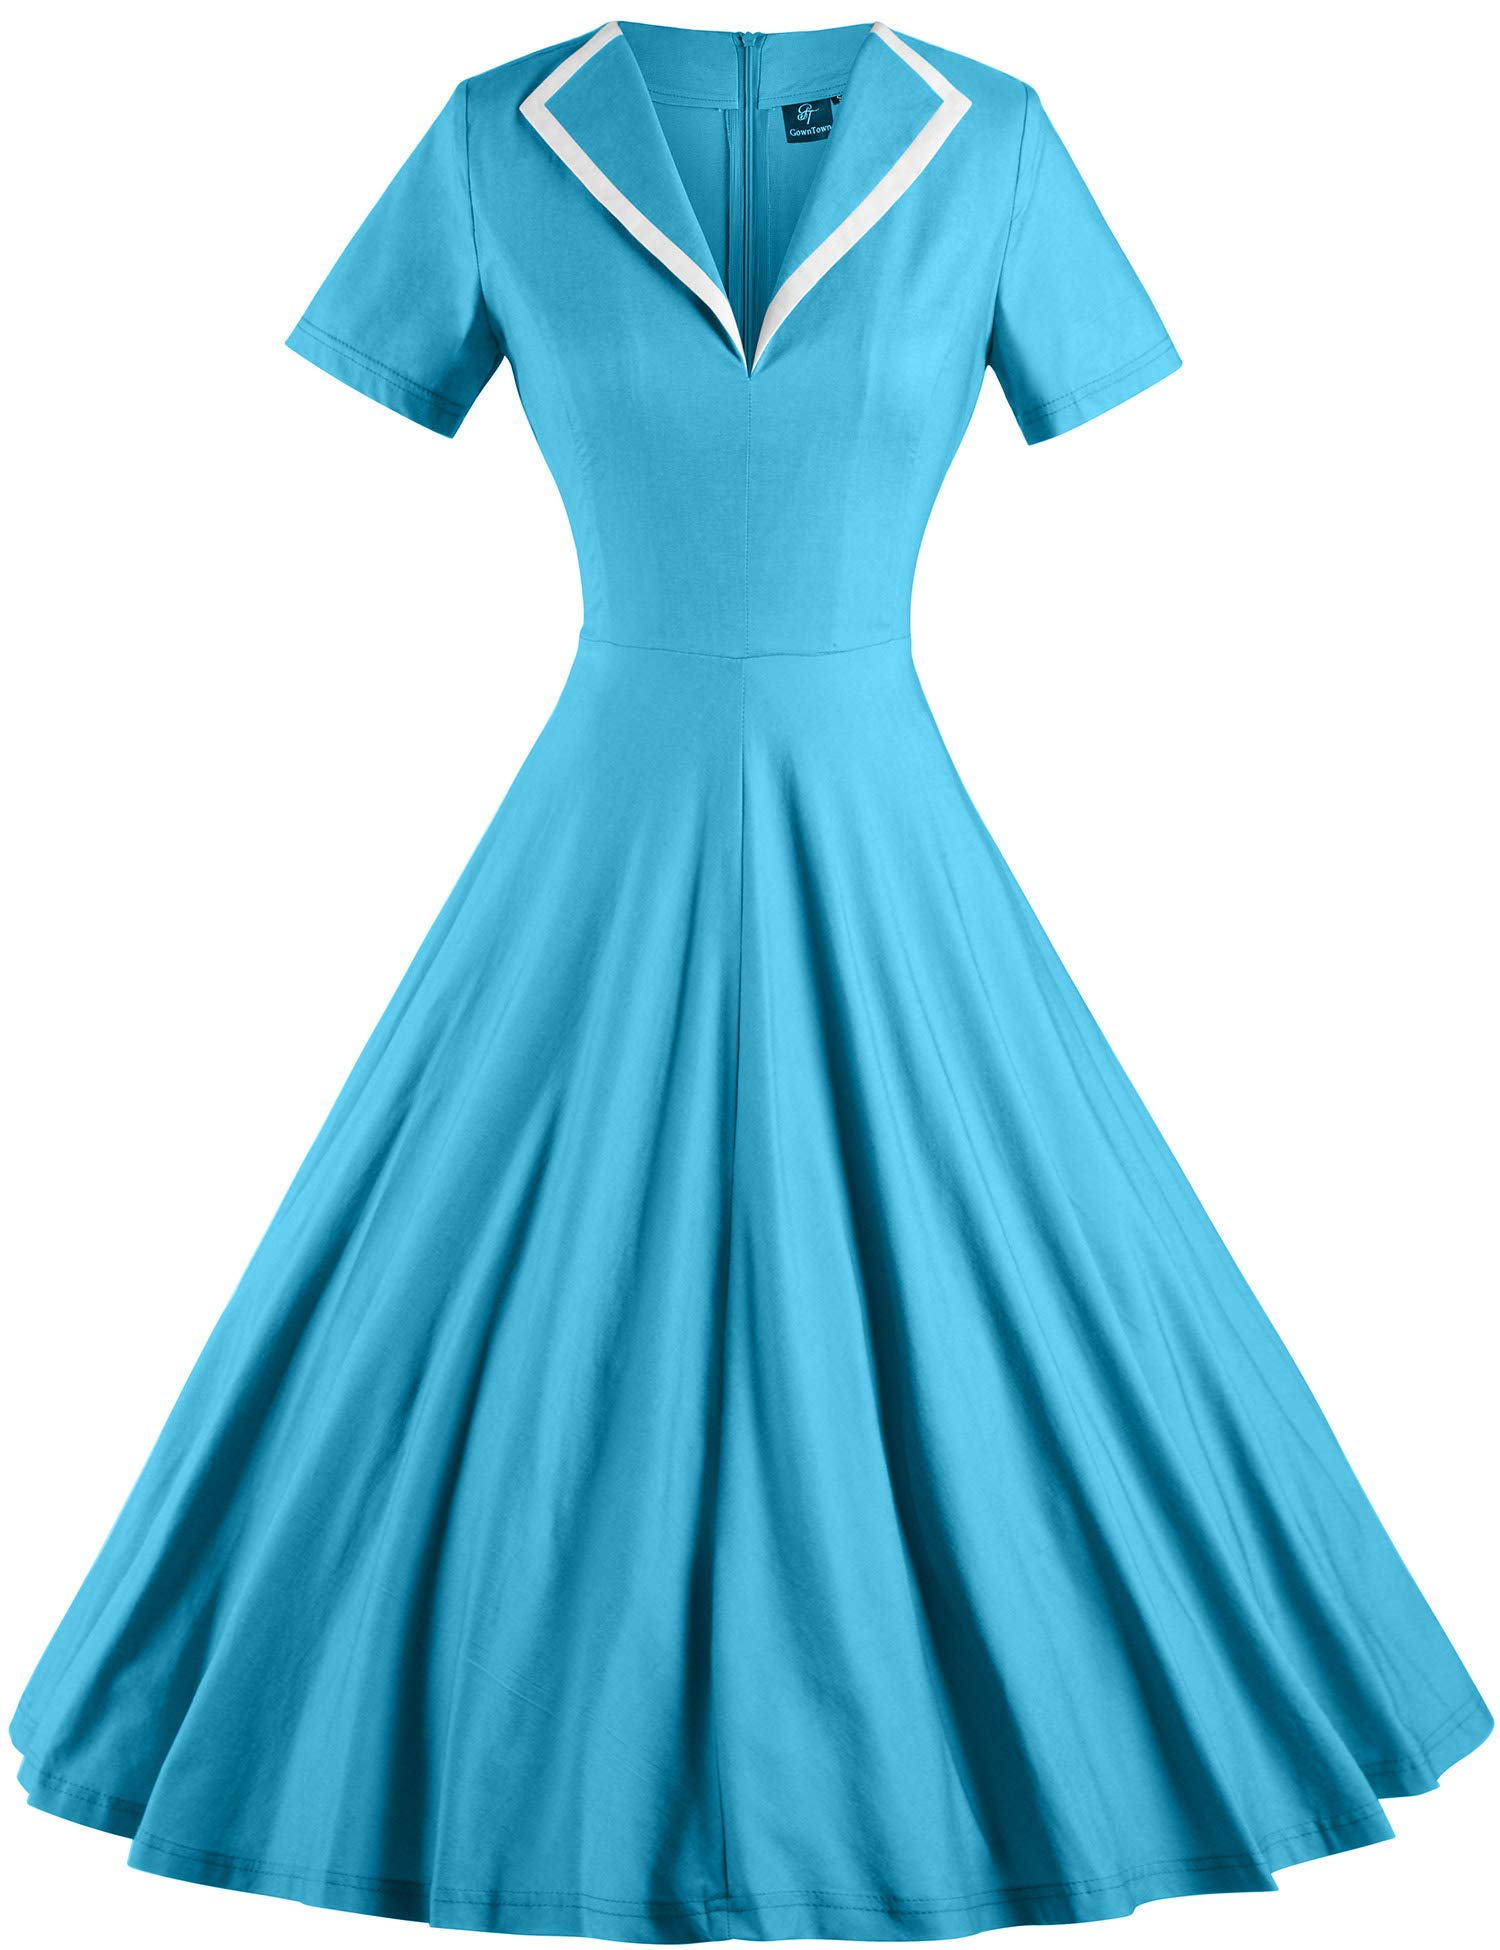 Available at Amazon: GownTown Women's 1950s Retro Vintage V-Neck Party Swing Dress